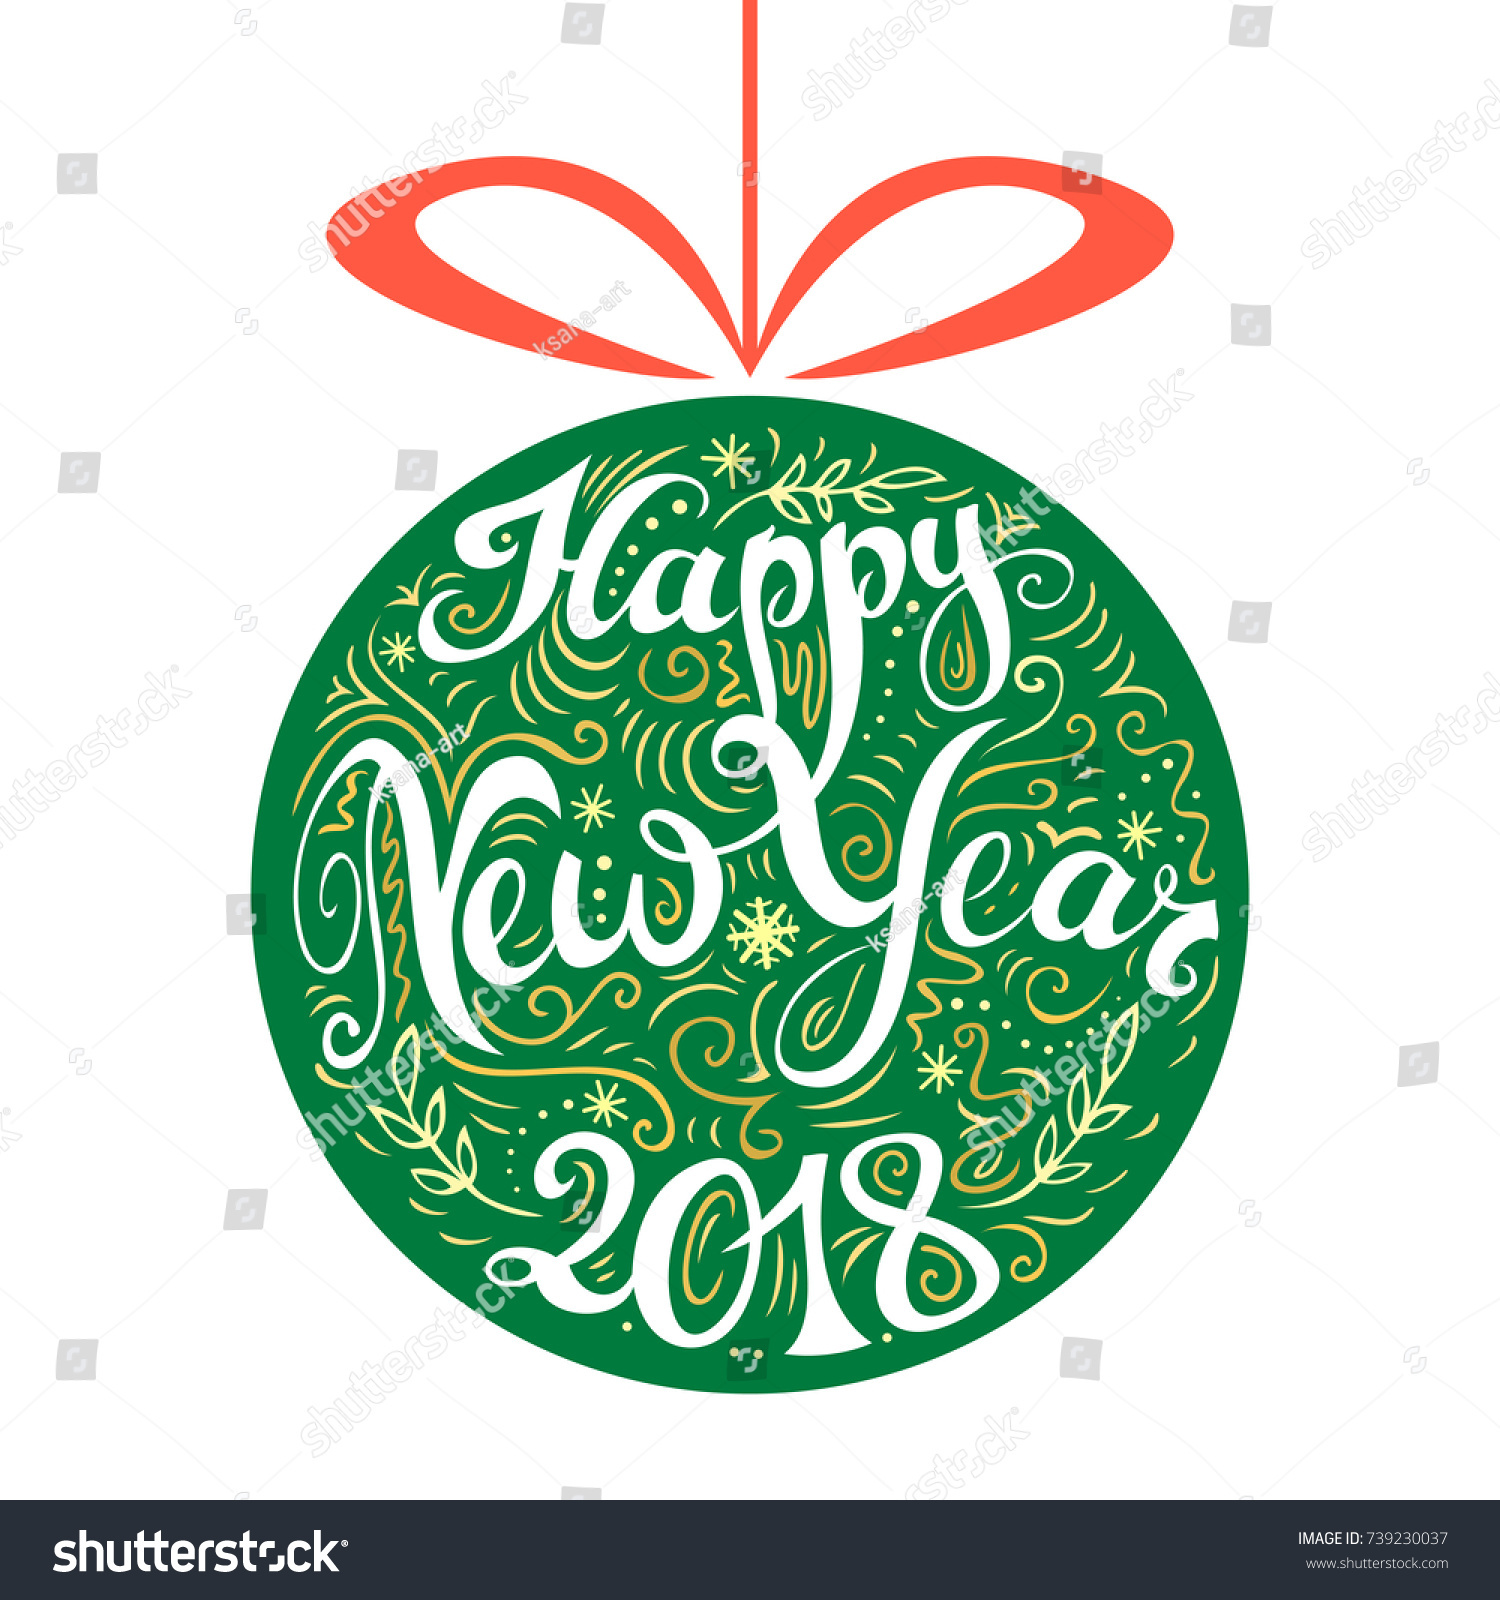 happy new year 2018 card hand drawn creative typography doodle style freehand lettering and